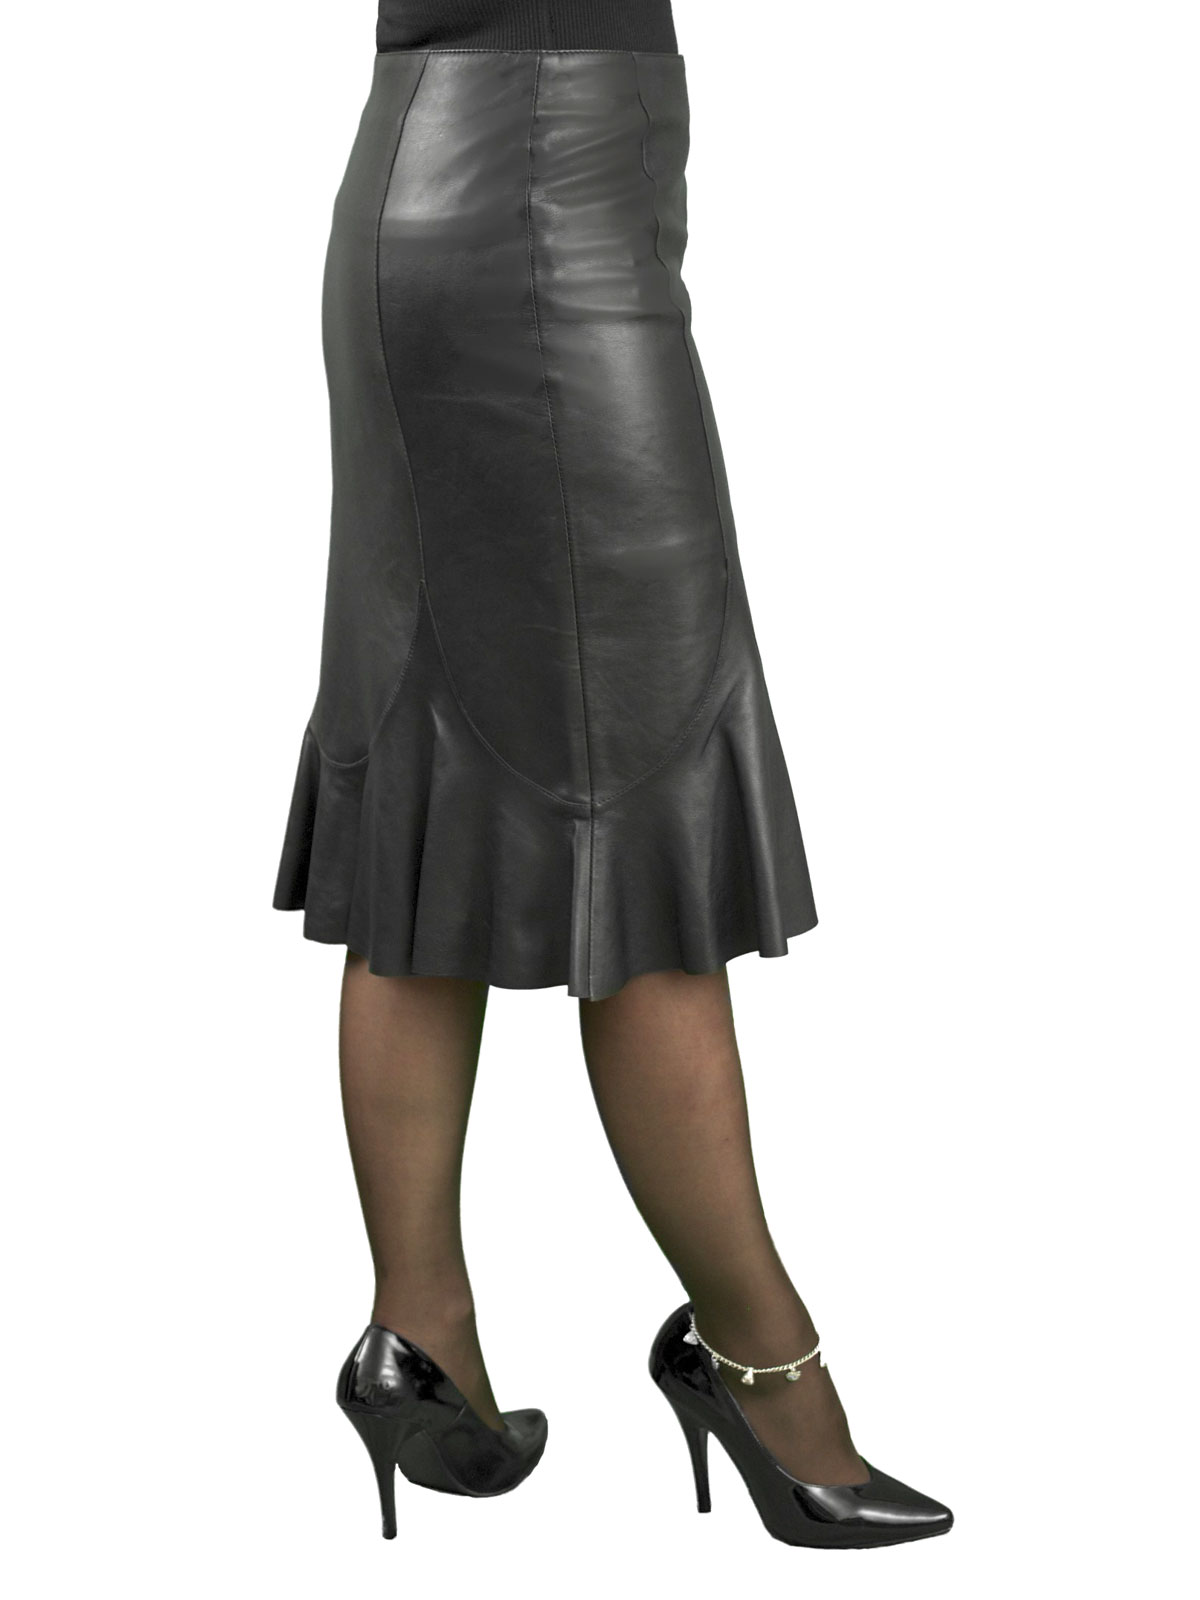 Fishtail Leather Skirt, below knee length - Tout Ensemble